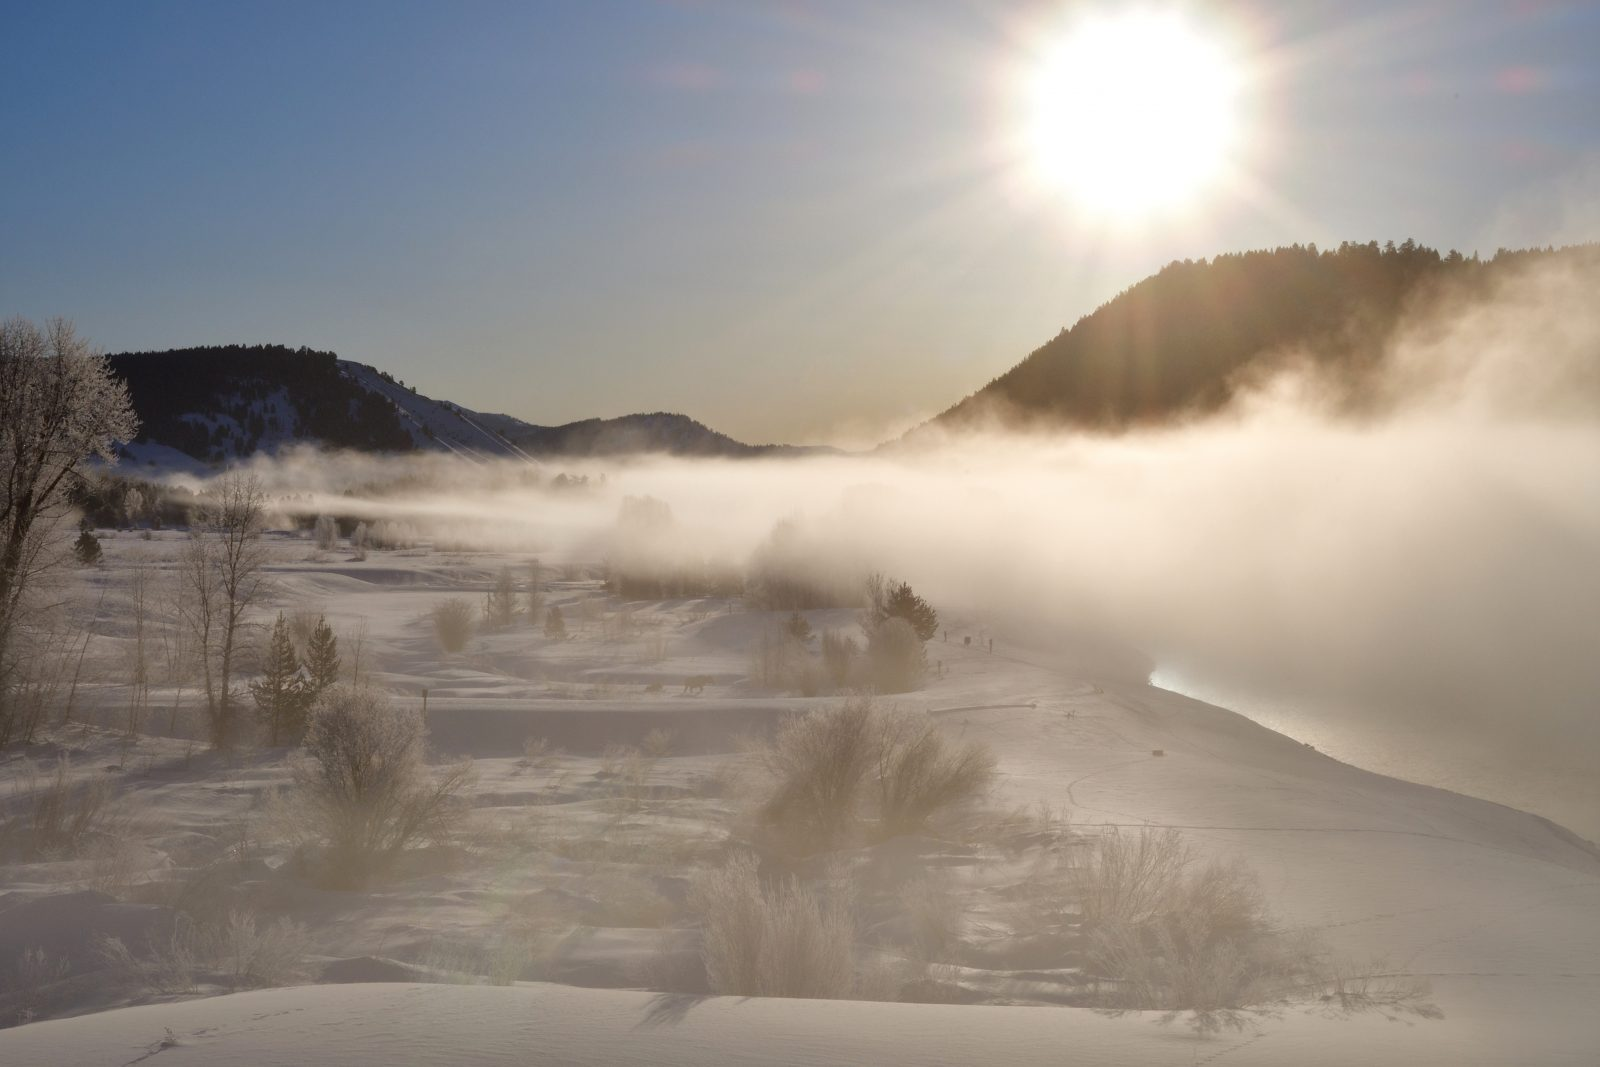 Morning Mist…. Can You Find The Moose?